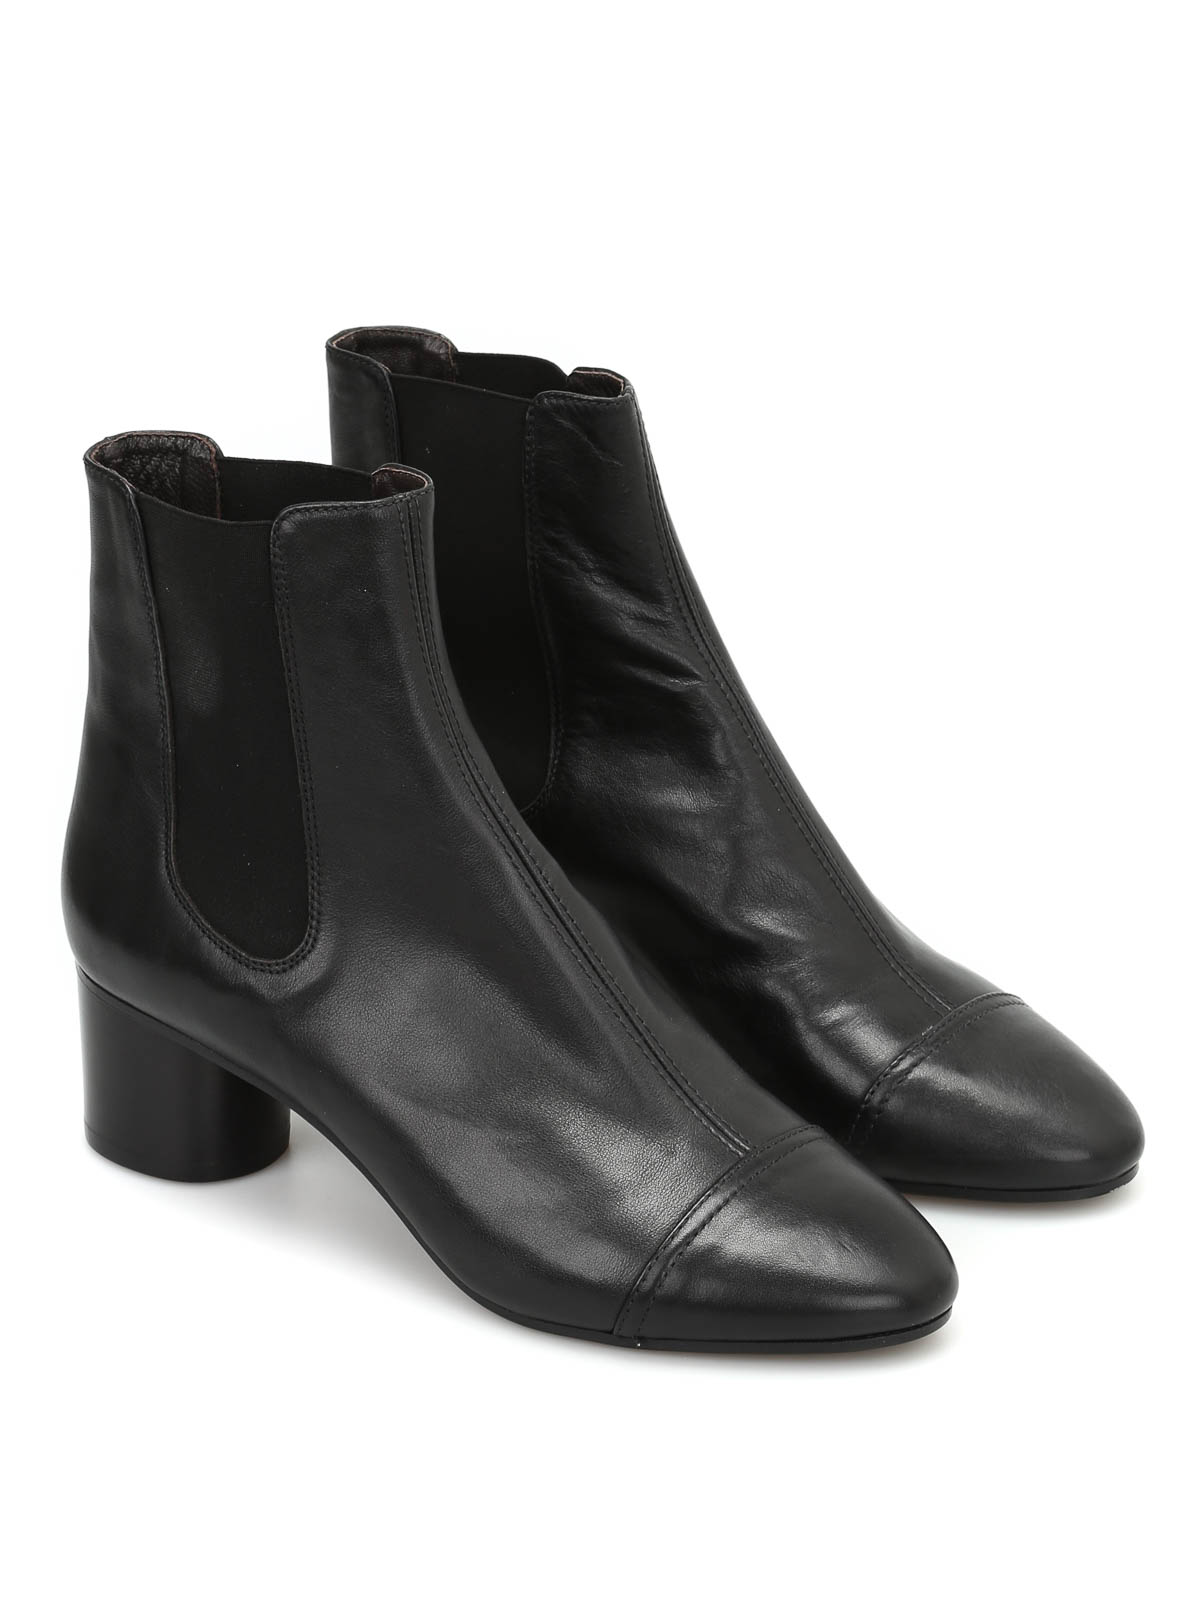 Ankle Boots Isabel Marant Danae leather slip on ankle boots by isabel marant ankle boots ikrix isabel marant ankle boots online danae leather slip on ankle boots sisterspd